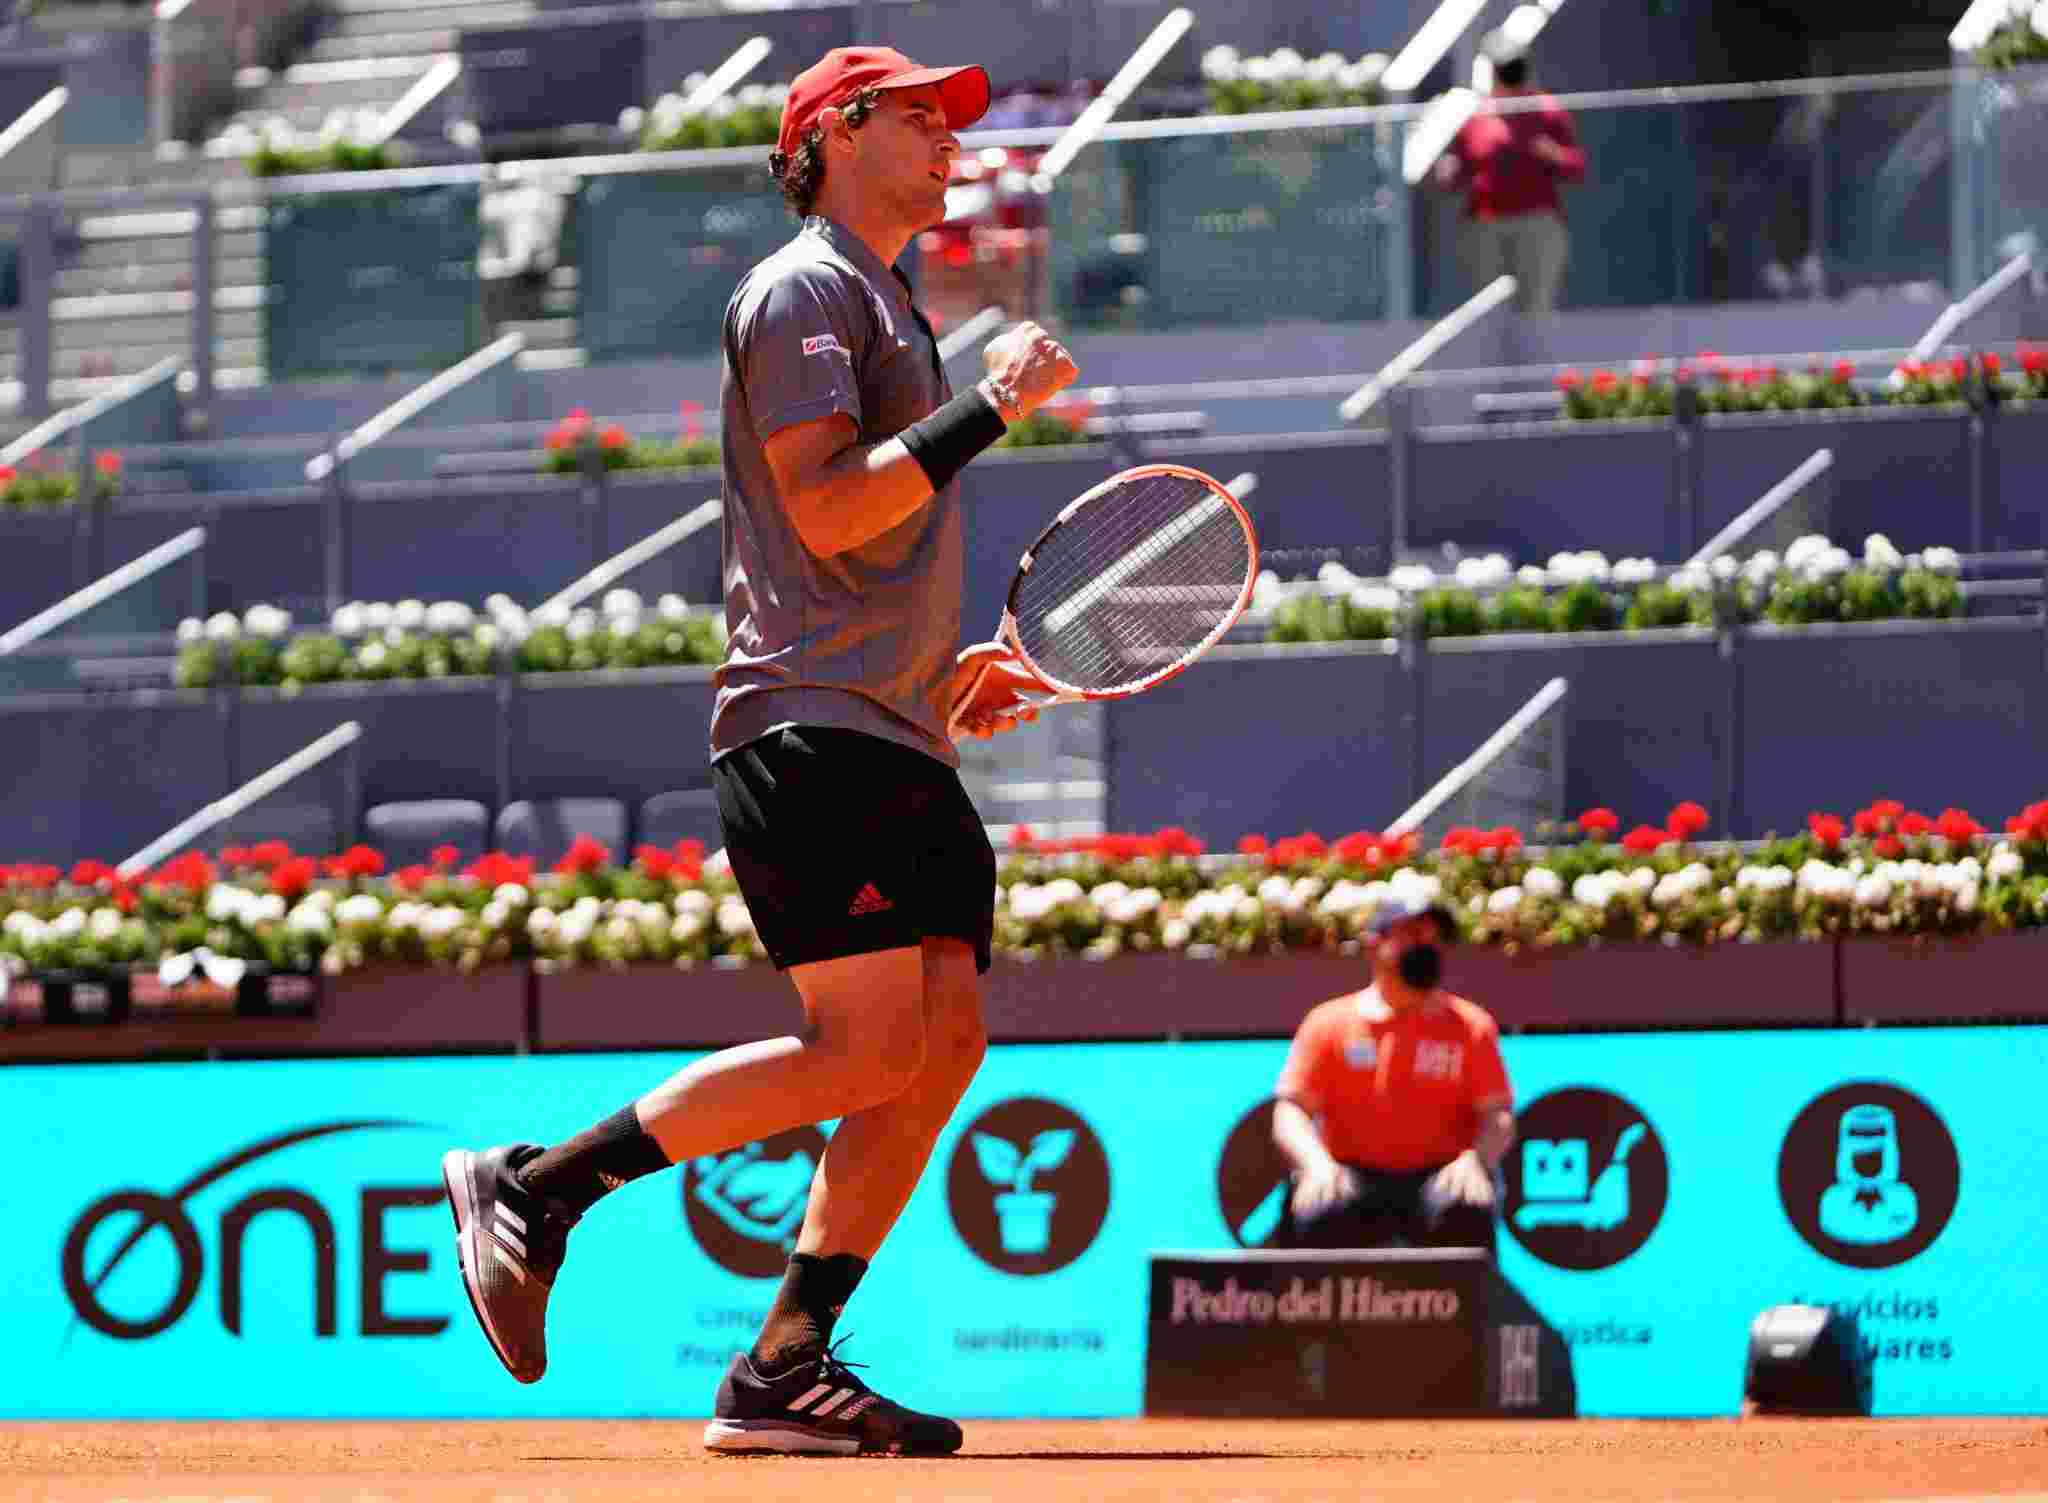 Dominic Thiem reached the semi-finals of the 2021 Madrid Open which was a surprise for the Austrian professional.